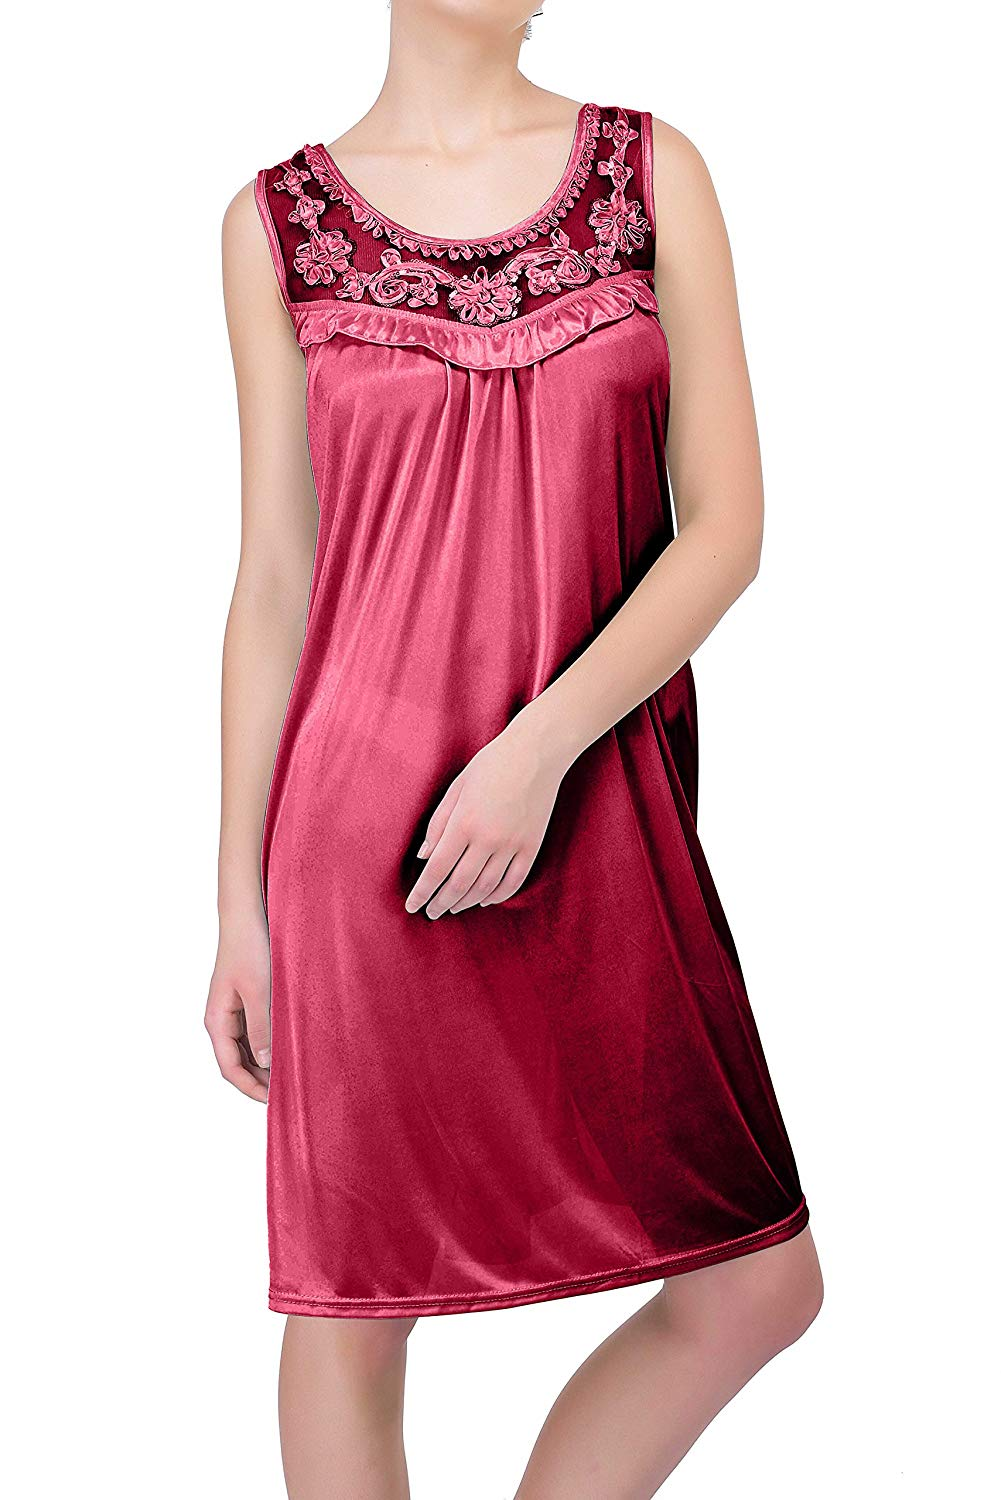 Womens petite nightgowns, contortion naked video